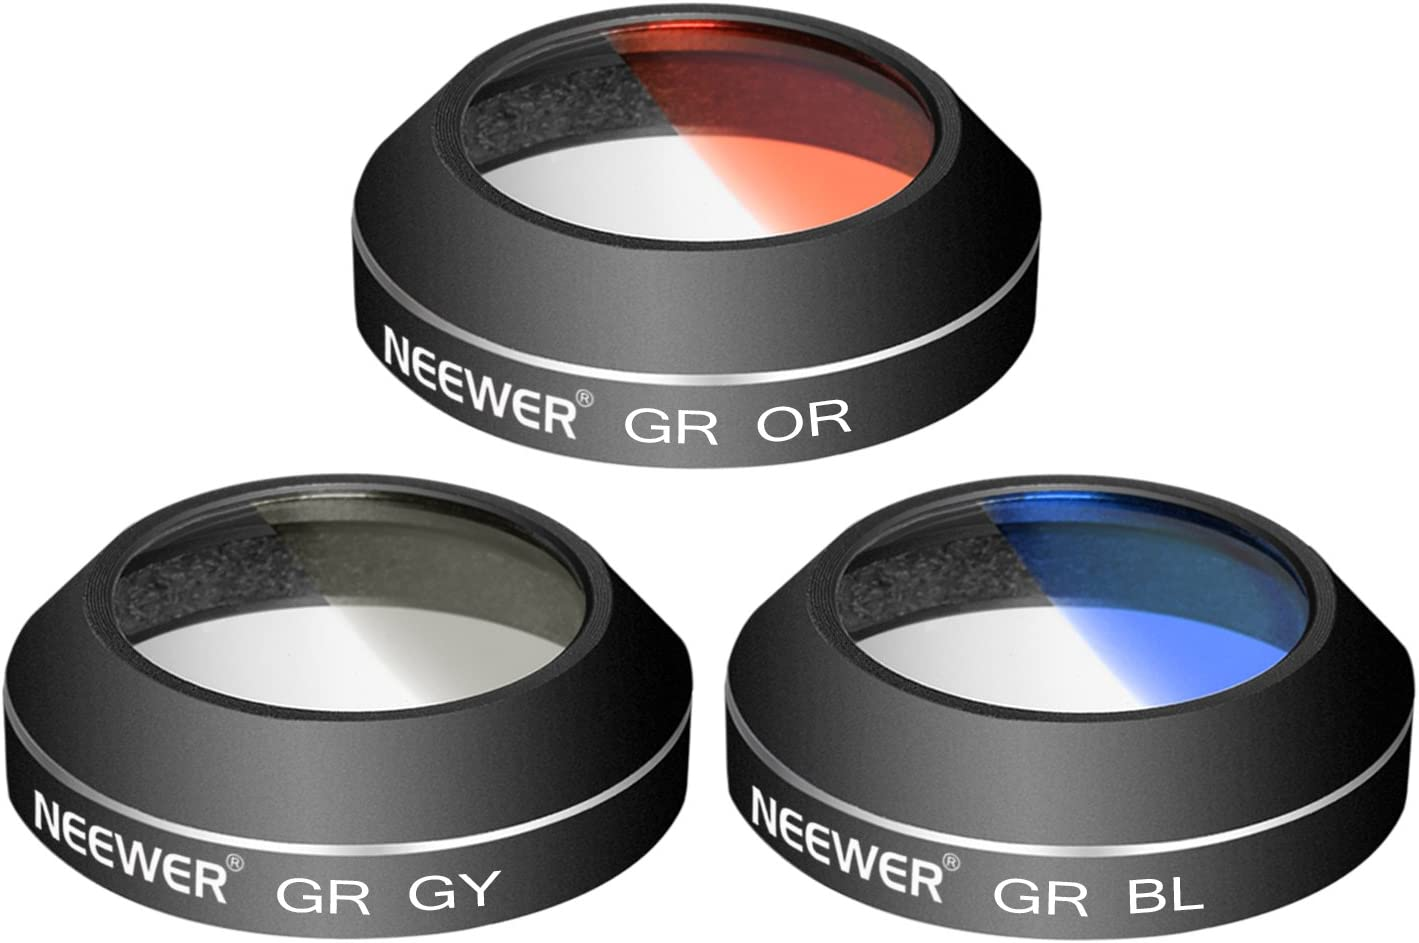 Grey, Orange, Blue Made of Aluminum Alloy and Resin Neewer 3 Pieces Graduated Color Filter Set for DJI Mavic Pro Drone Quadcopter